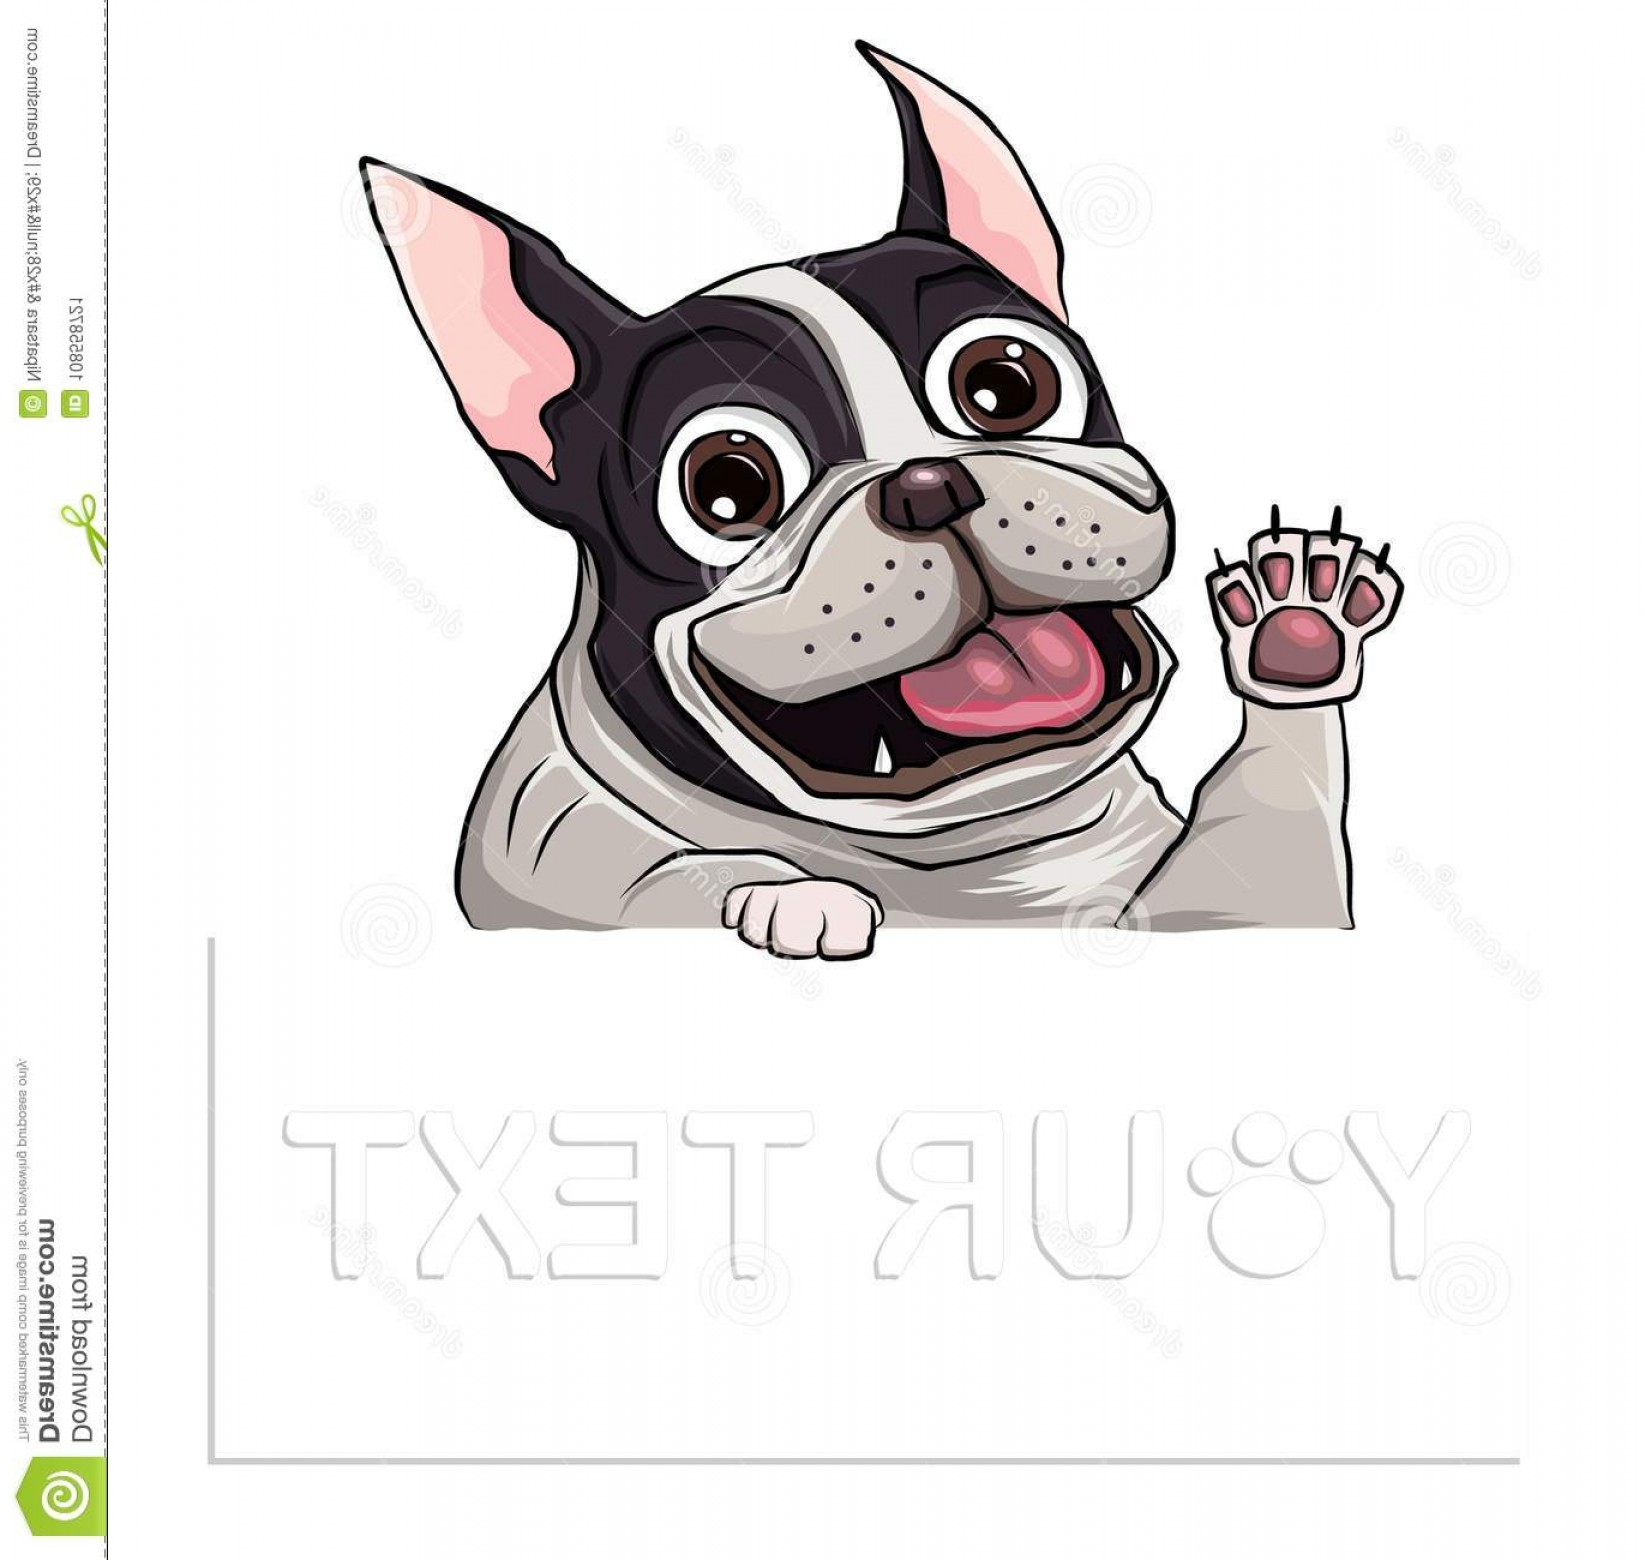 Vector Smiling Bulldog: Hand Drawn Puppy French Bulldog Place Text Vector Cartoon Happy French Bulldog Smile Space Text Hand Drawn Puppy Image